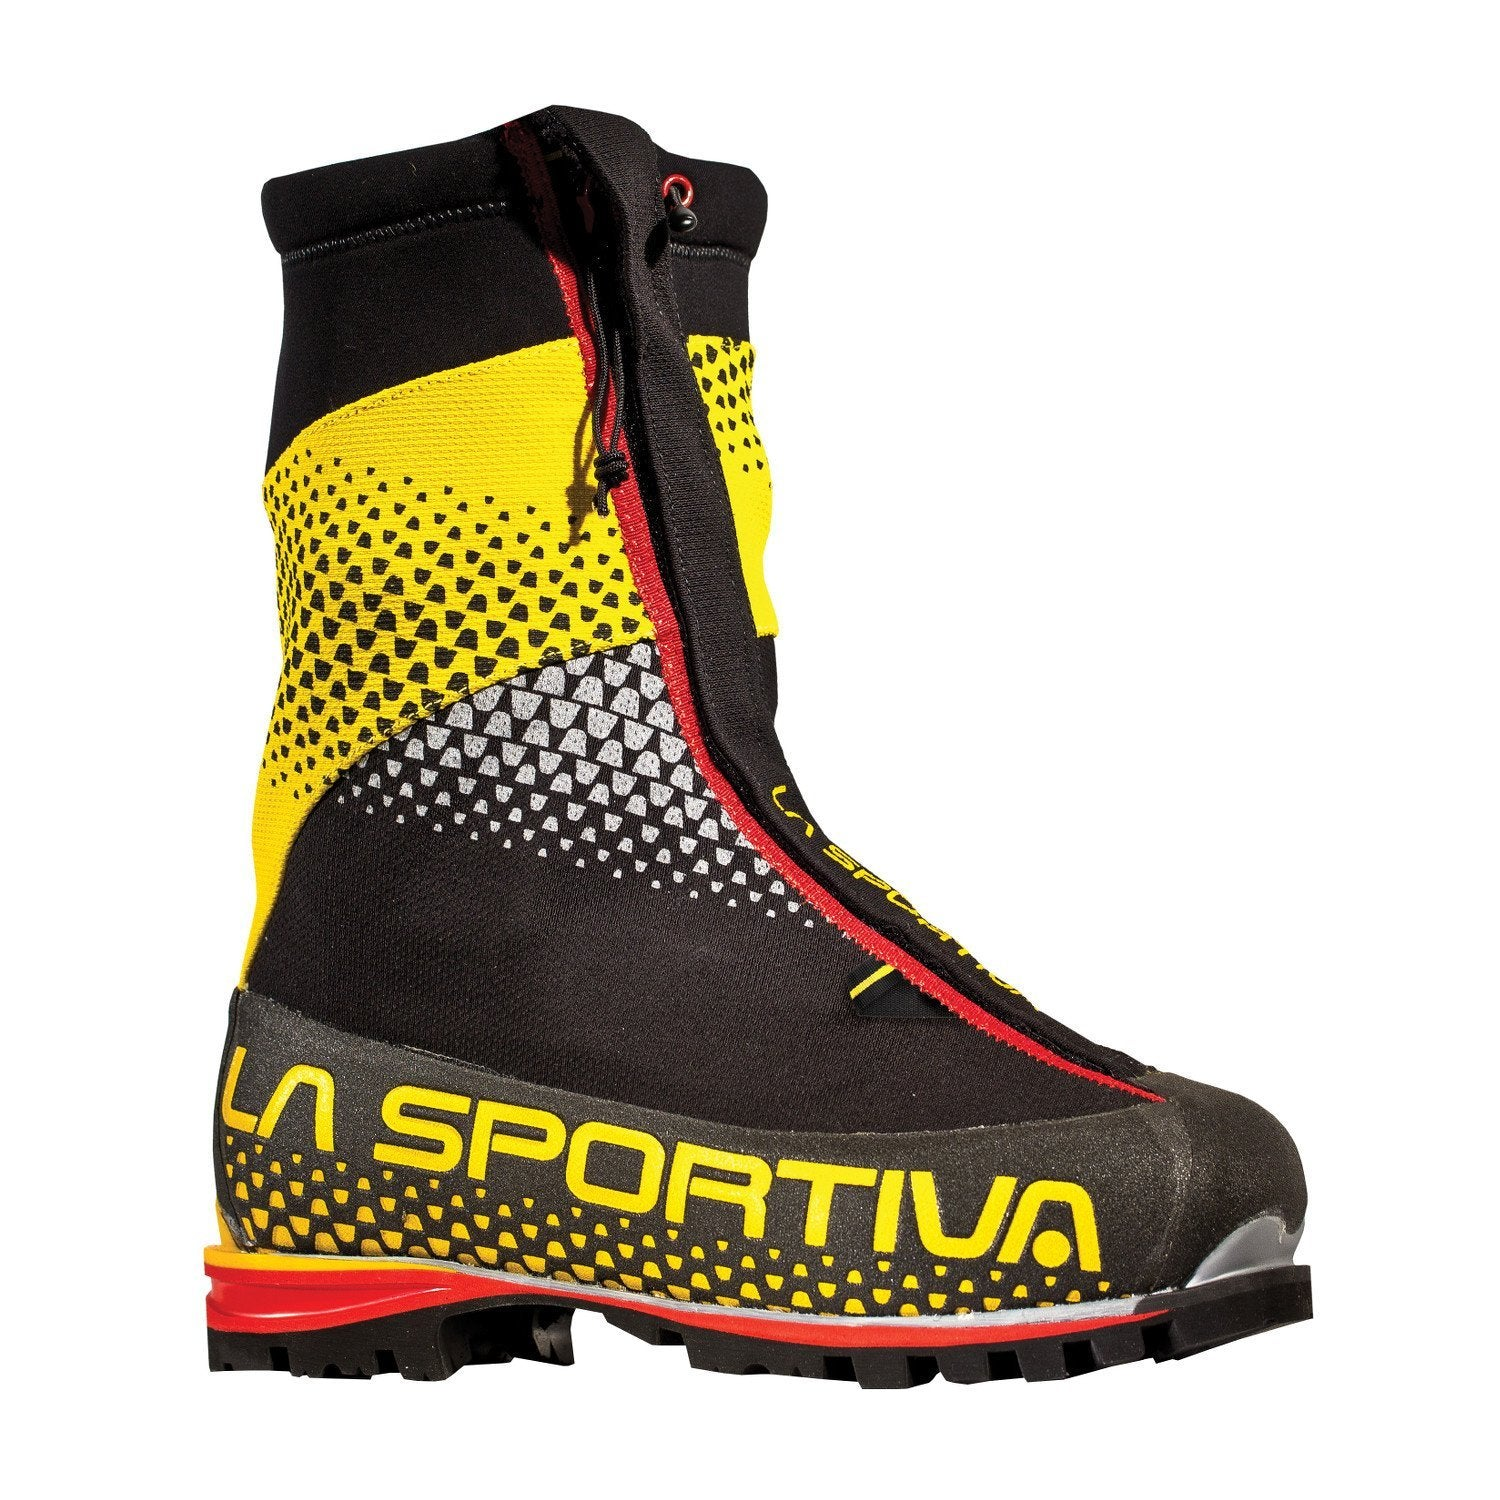 La Sportiva G2 SM Mountaineering Boot, outer side view in black and yellow colours